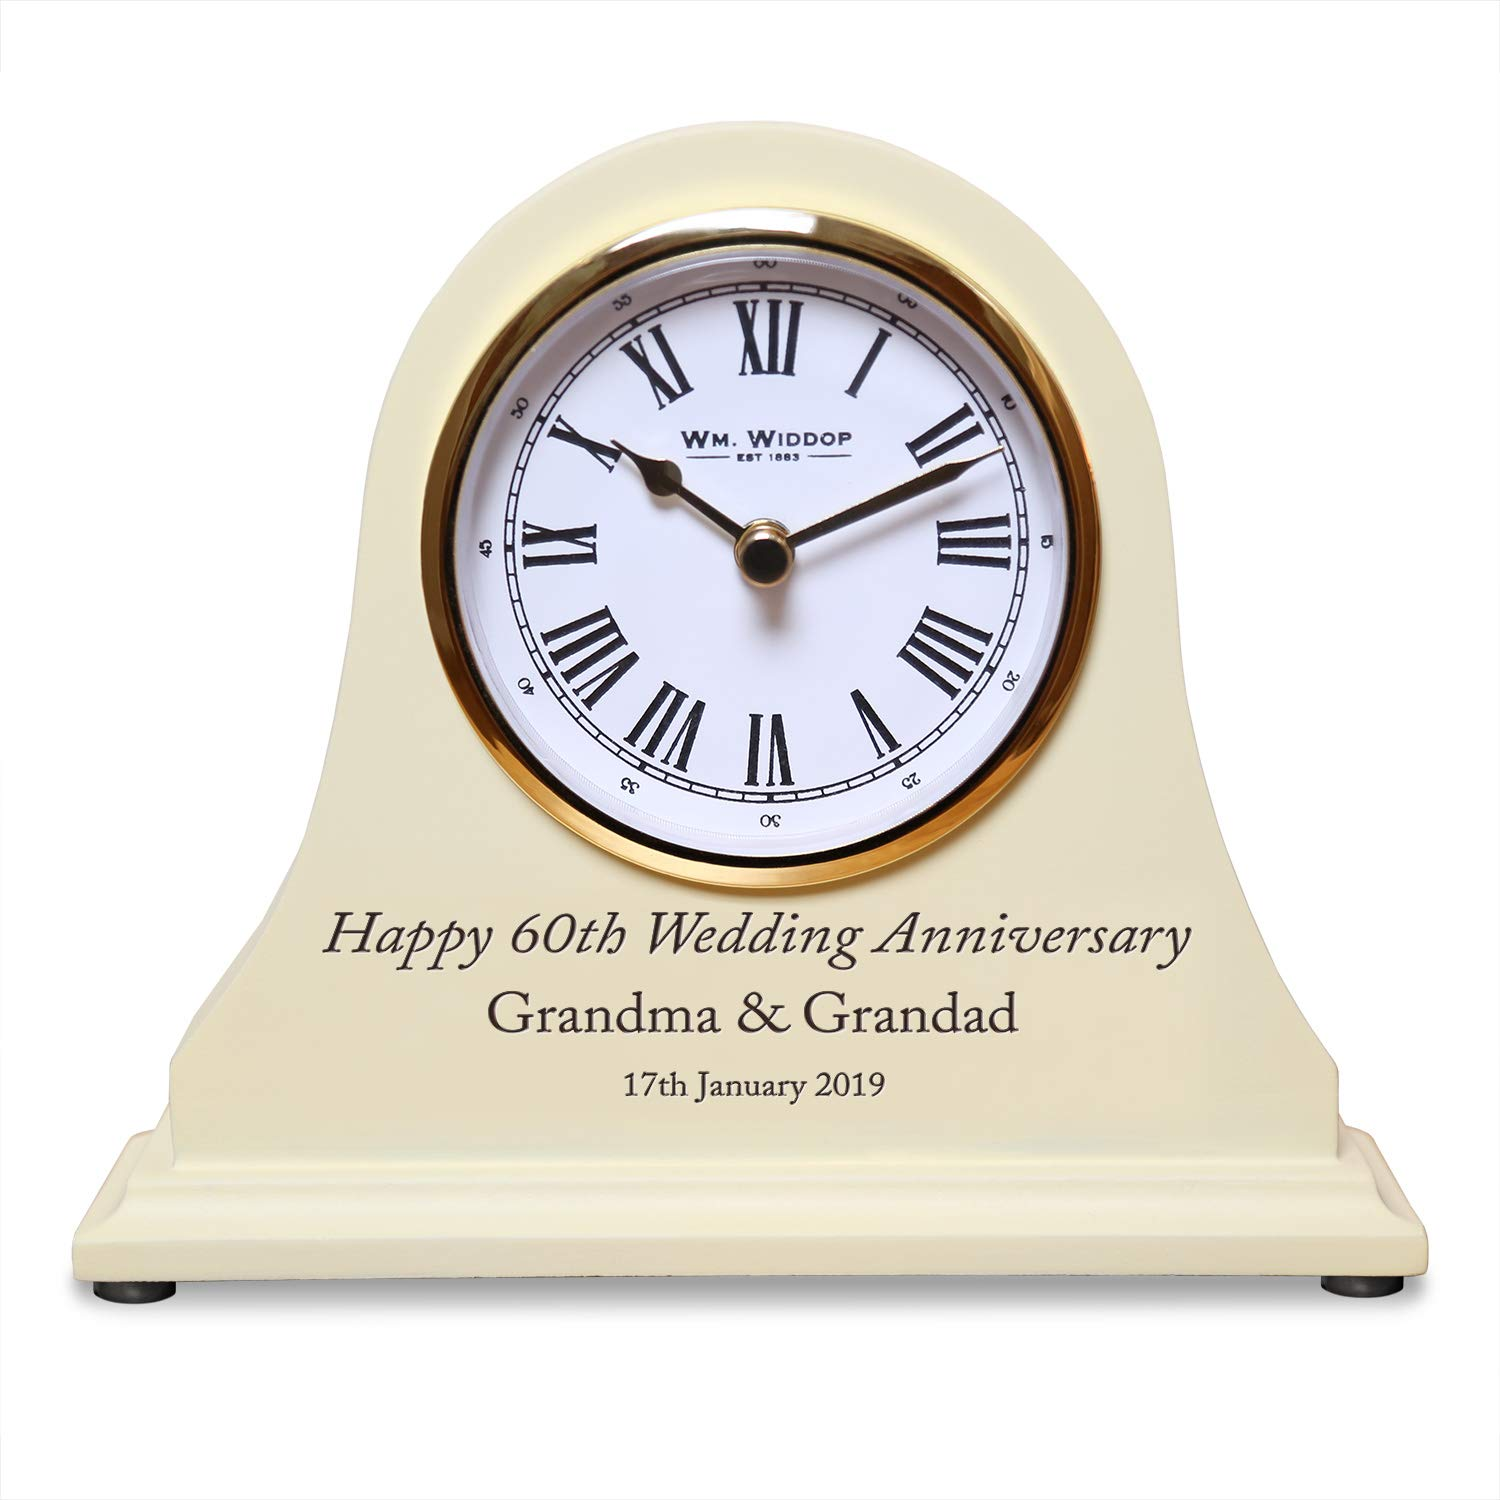 De Walden 60th Diamond Wedding Engraved Wooden Clock 60 Years Gifts The Great Gifts Company